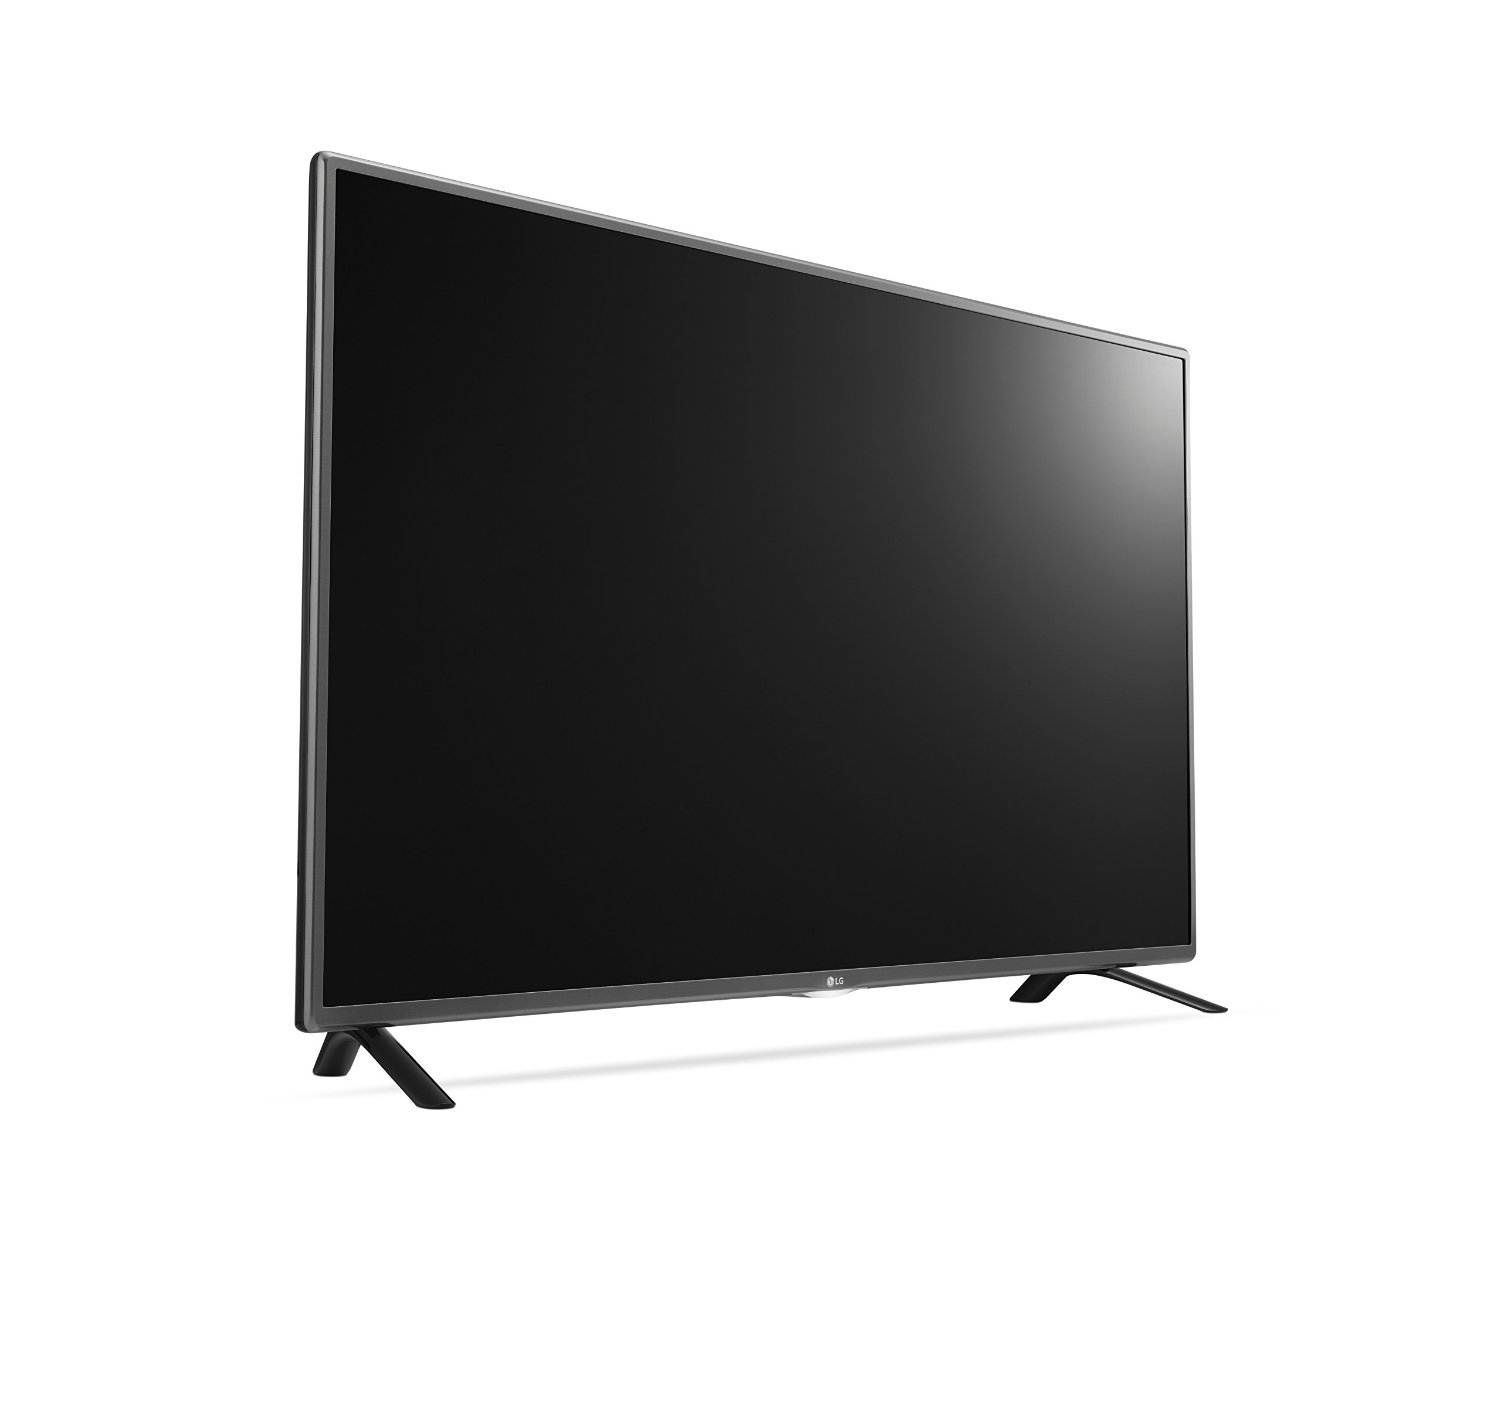 lg 42lf5530 106 cm 42 led tv full hd photos images and wallpapers. Black Bedroom Furniture Sets. Home Design Ideas